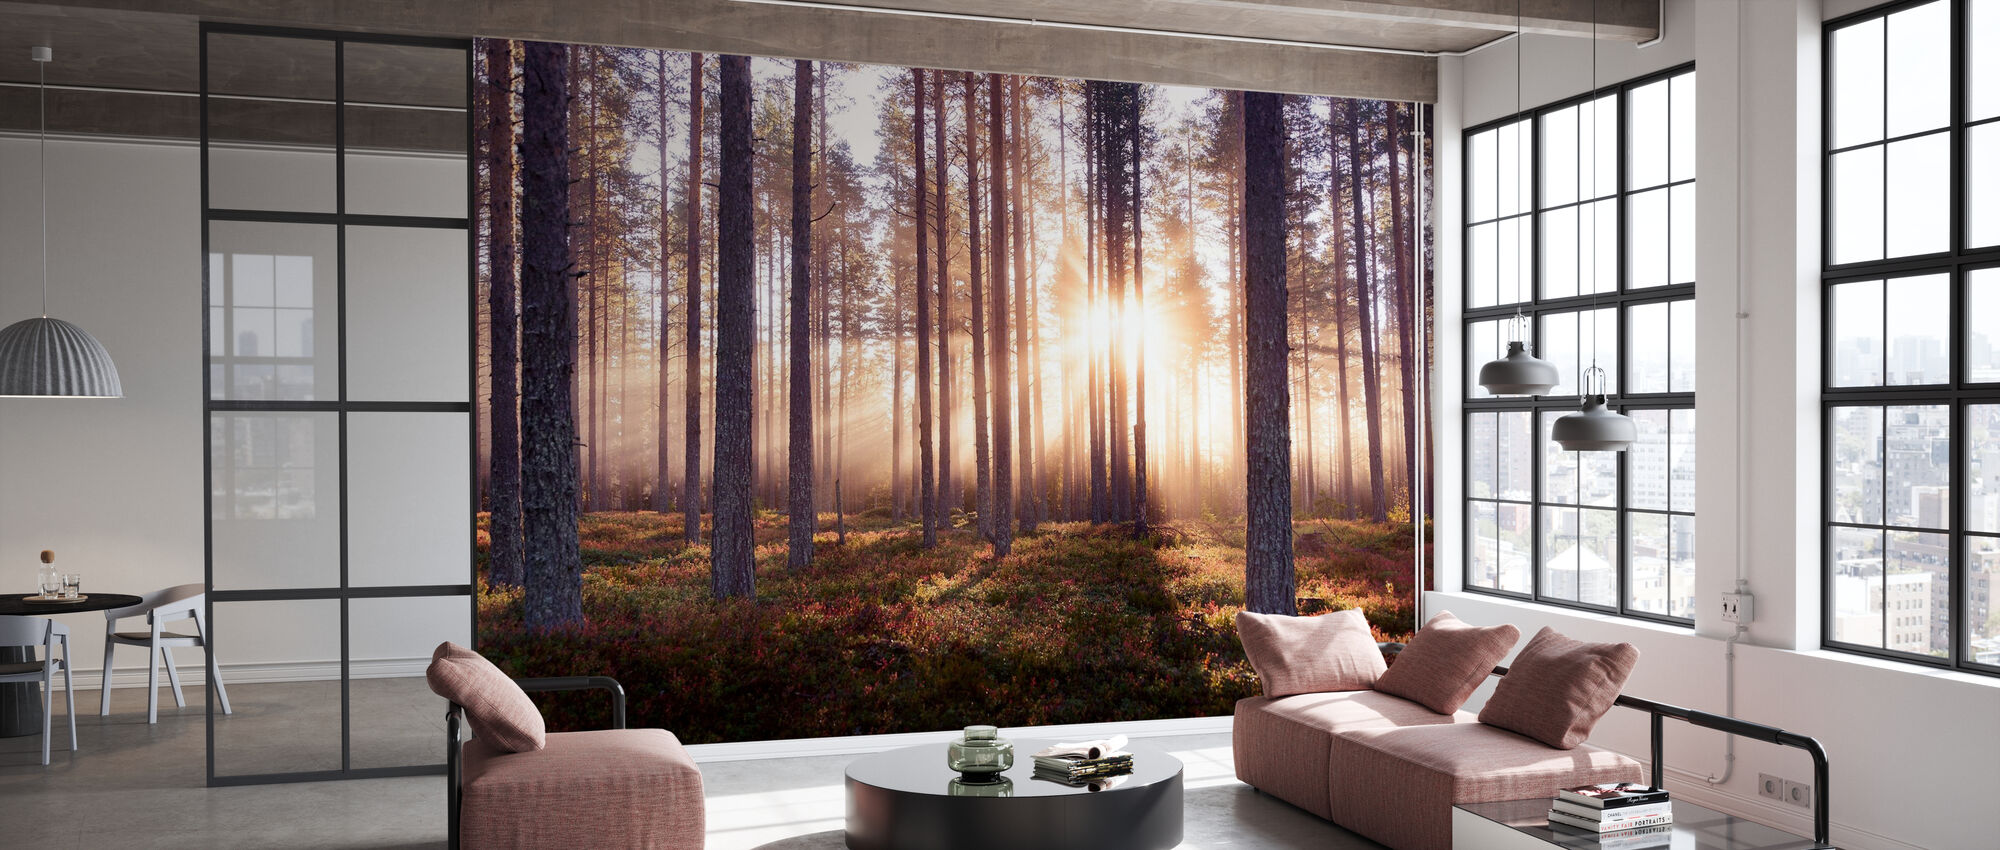 The Enchanted Forest - Wallpaper - Office